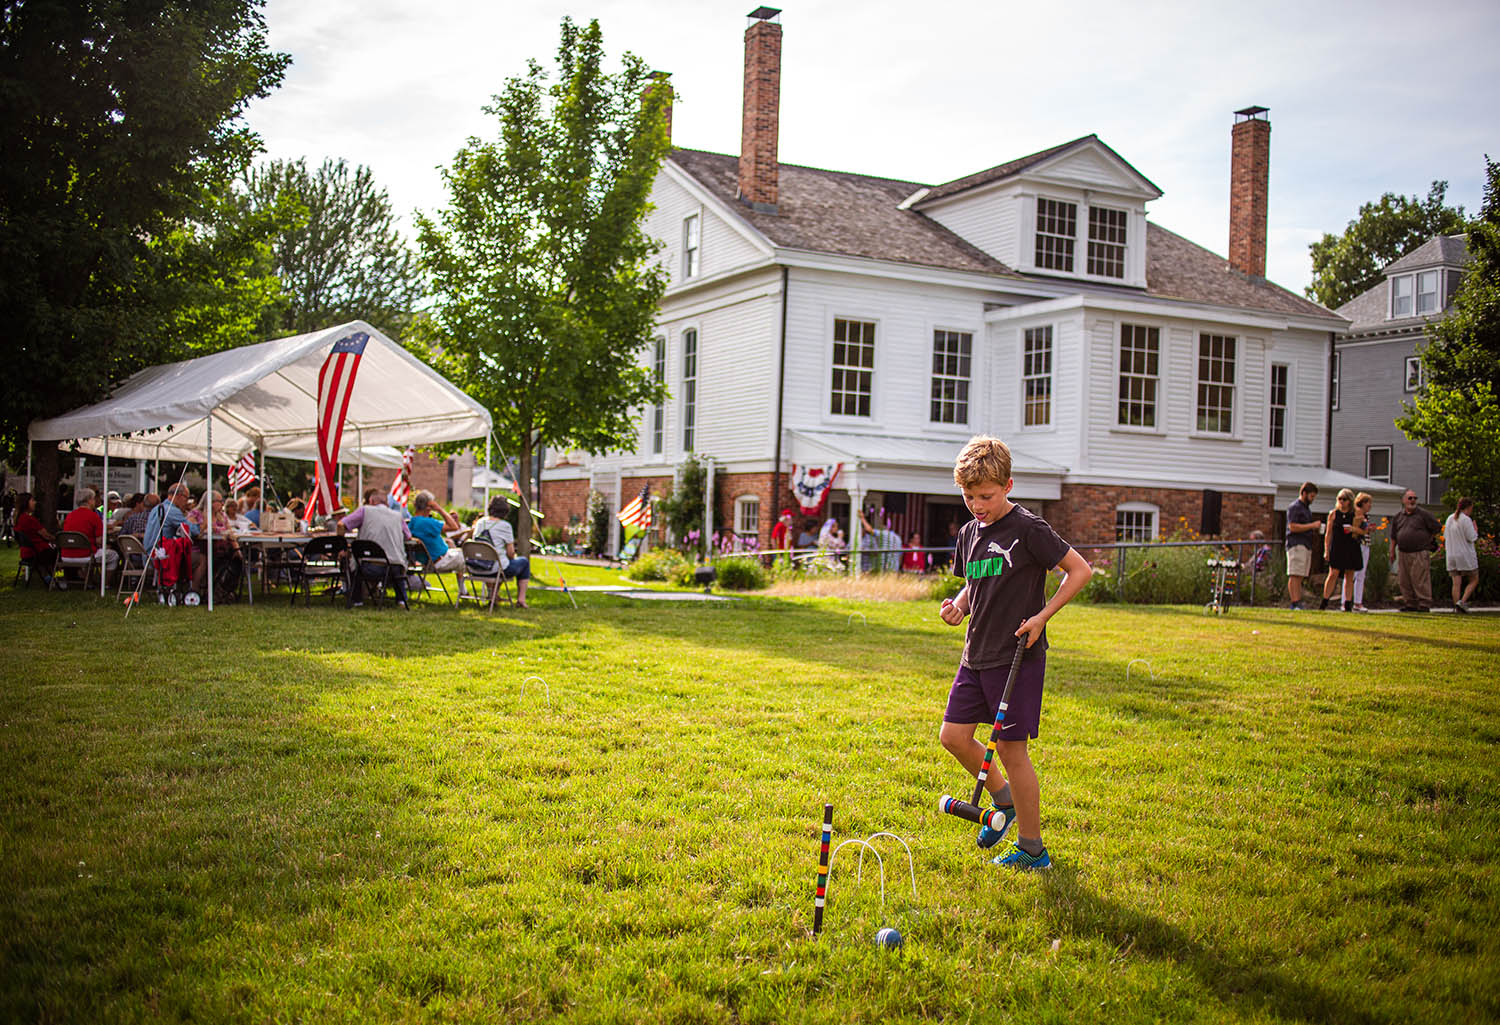 "Nathan Frey, 9, reacts as his croquet ball hits the center peg while playing in the newly enlarged backyard area during the annual ""Clara Irwin's Strawberry Party"" at theElijah Iles House, Thursday, July 4, 2019, in Springfield, Ill. The annual event celebrates Clara Irwin, who was the spouse of the second owner of the Elijah Iles House, and was known for her advocacy of the horticultural arts and also for her strawberries and strawberry parties in the 1840s and '50s. [Justin L. Fowler/The State Journal-Register]"